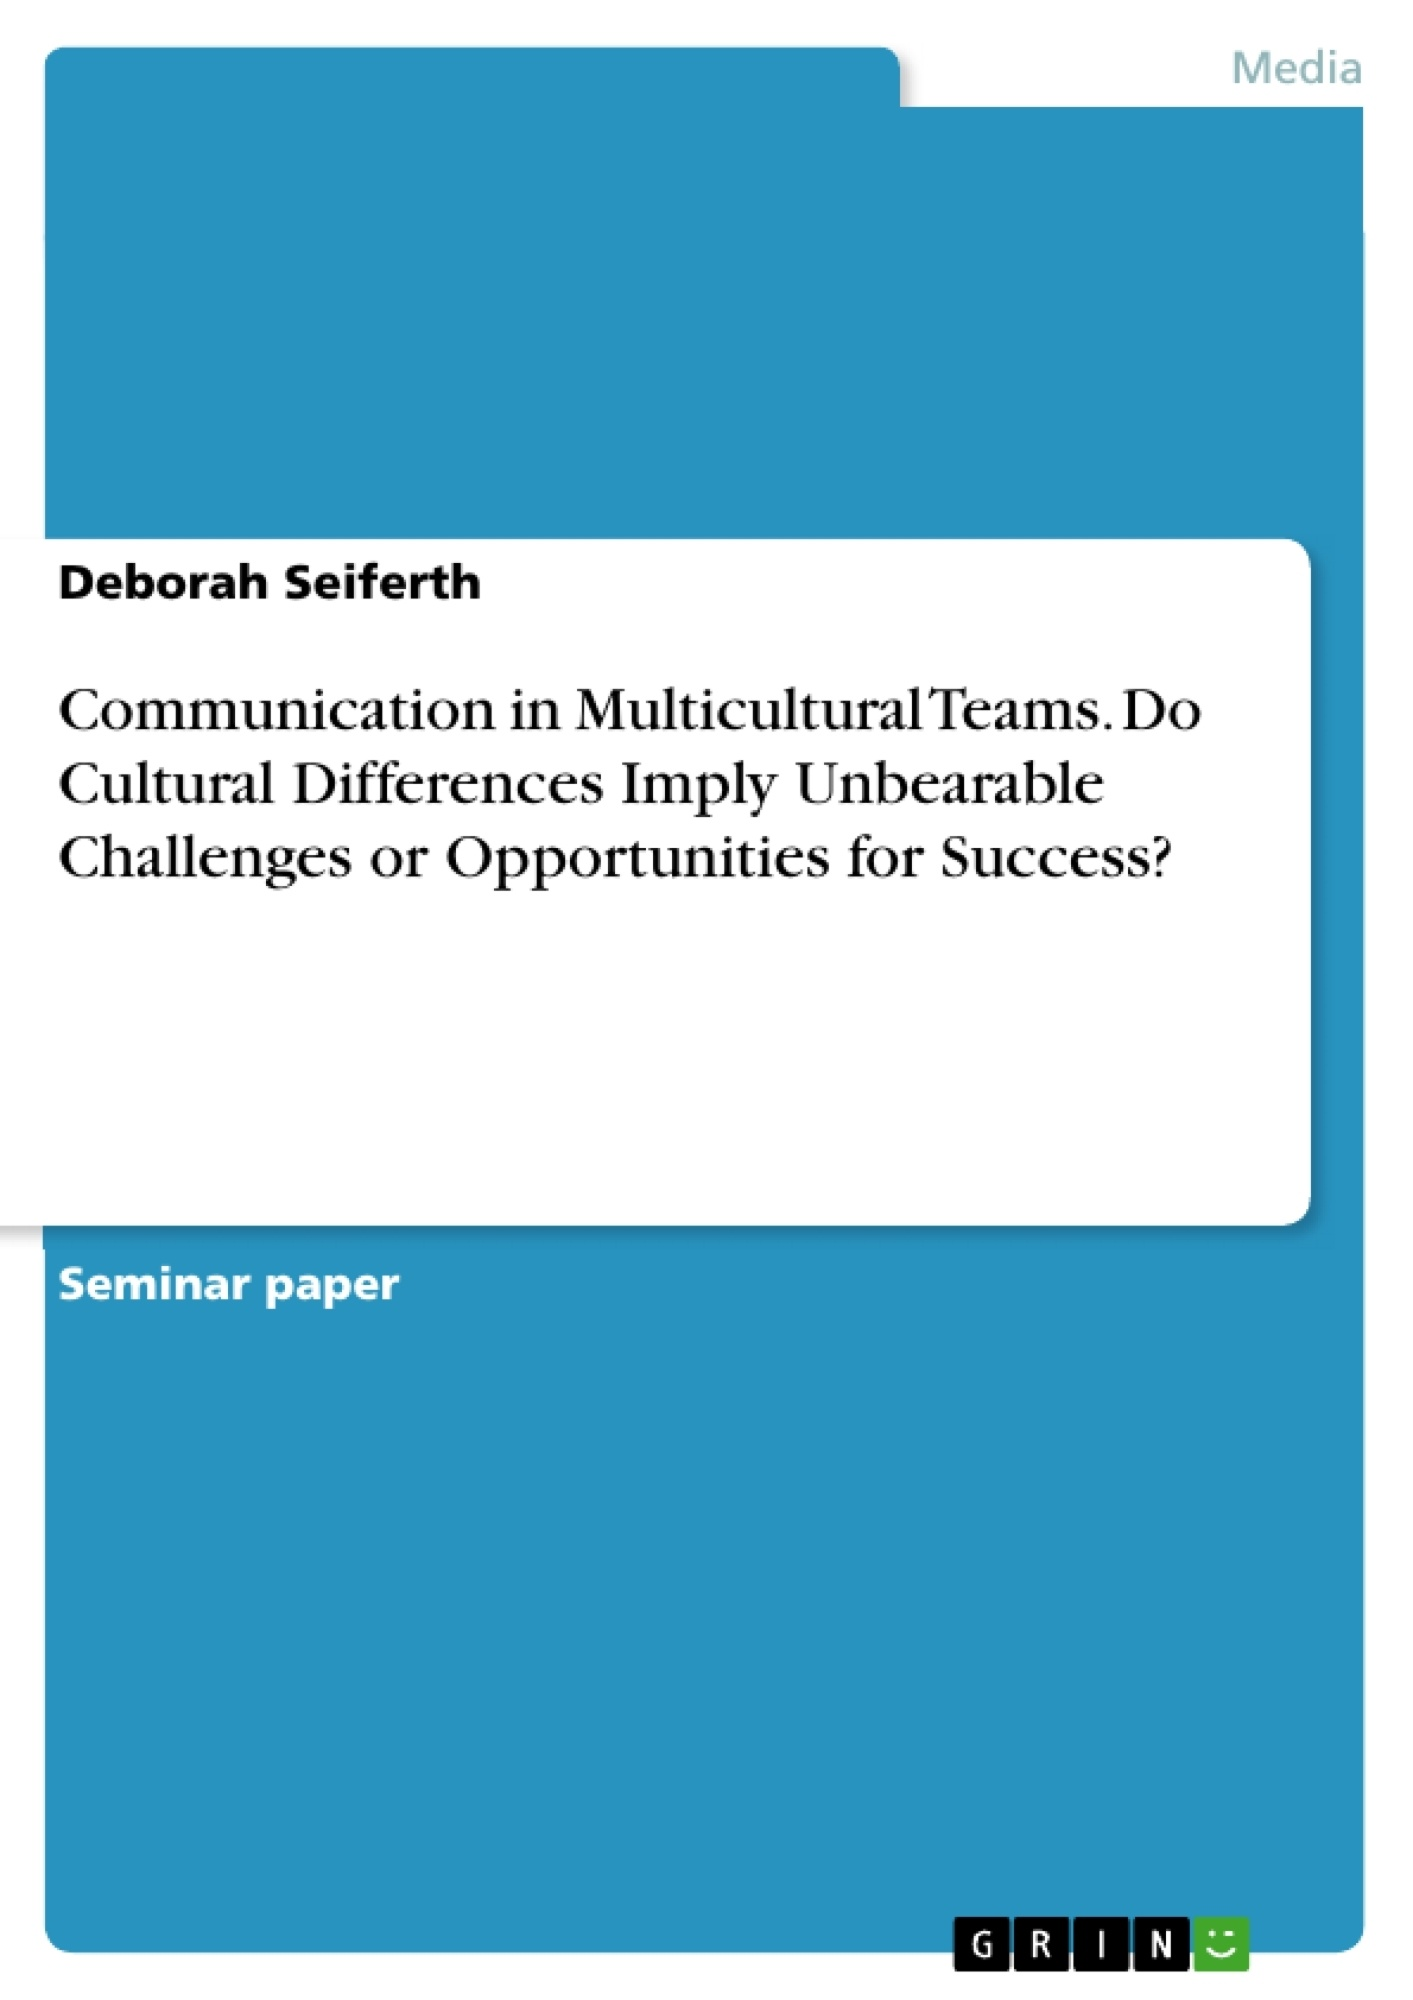 Title: Communication in Multicultural Teams. Do Cultural Differences Imply Unbearable Challenges or Opportunities for Success?